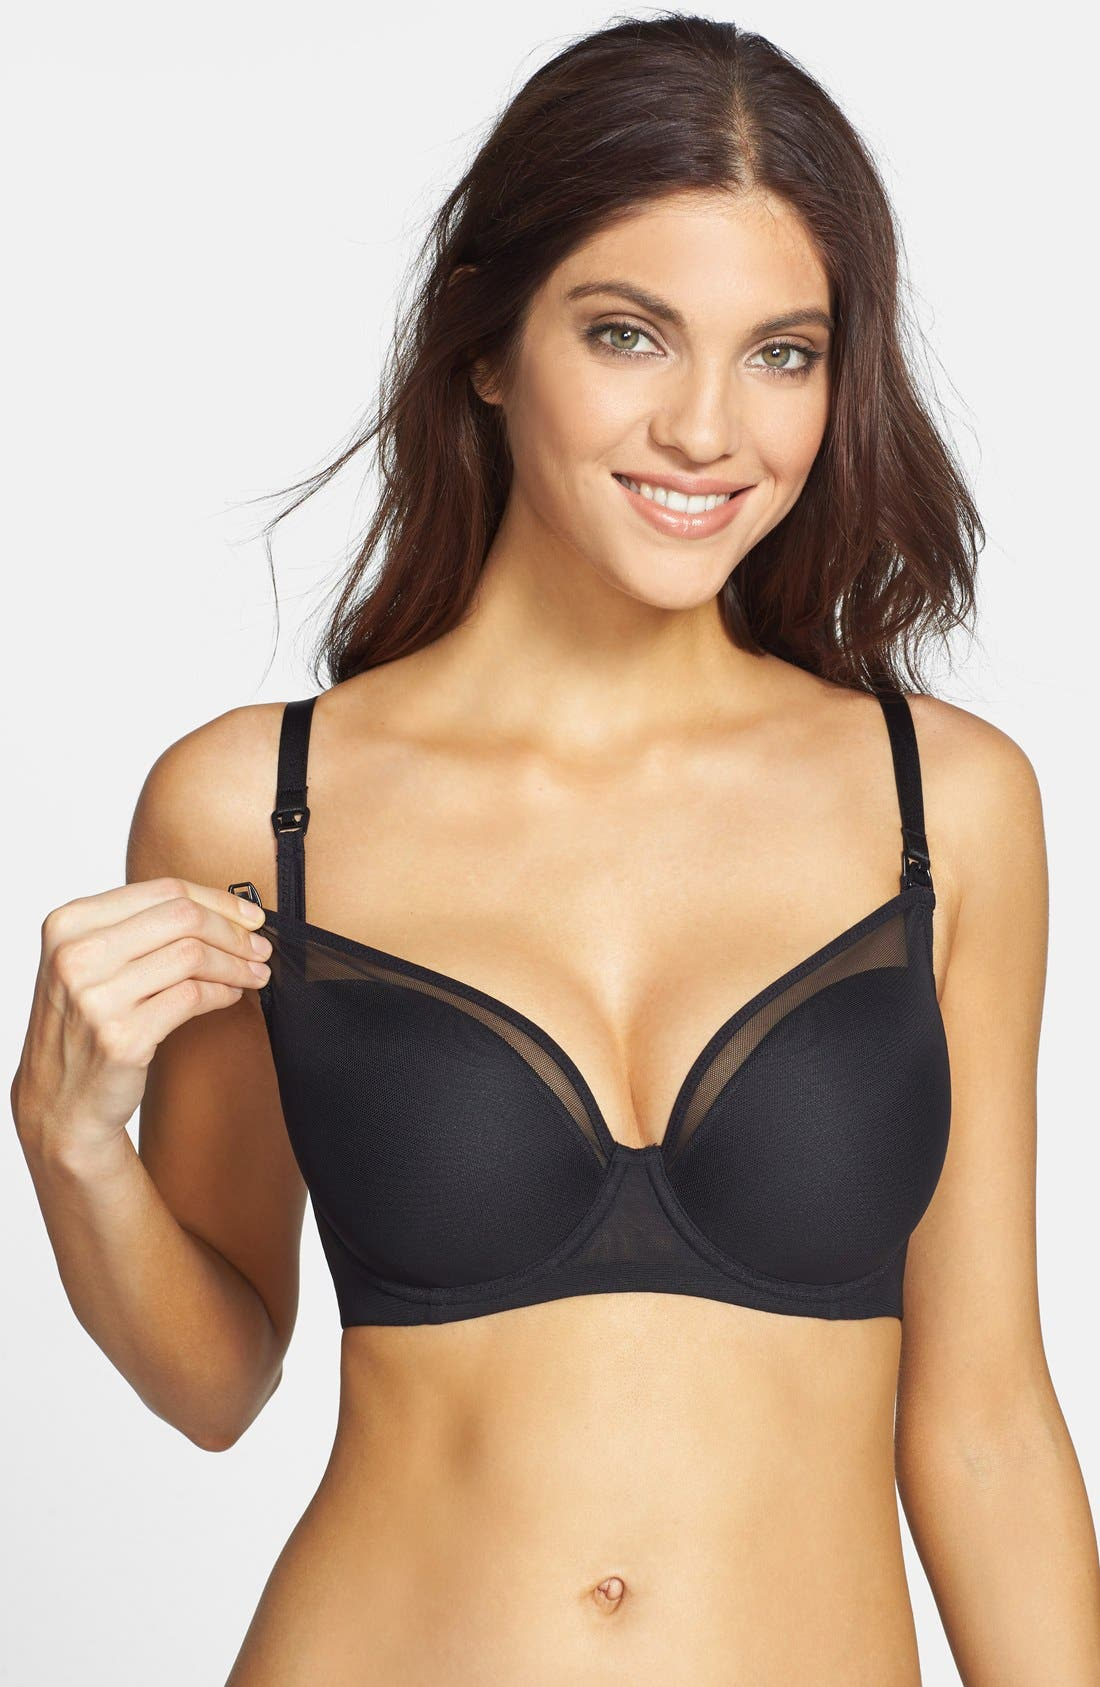 Le Mystére 'Mama Mia' Underwire Nursing Bra,                             Main thumbnail 1, color,                             BLACK